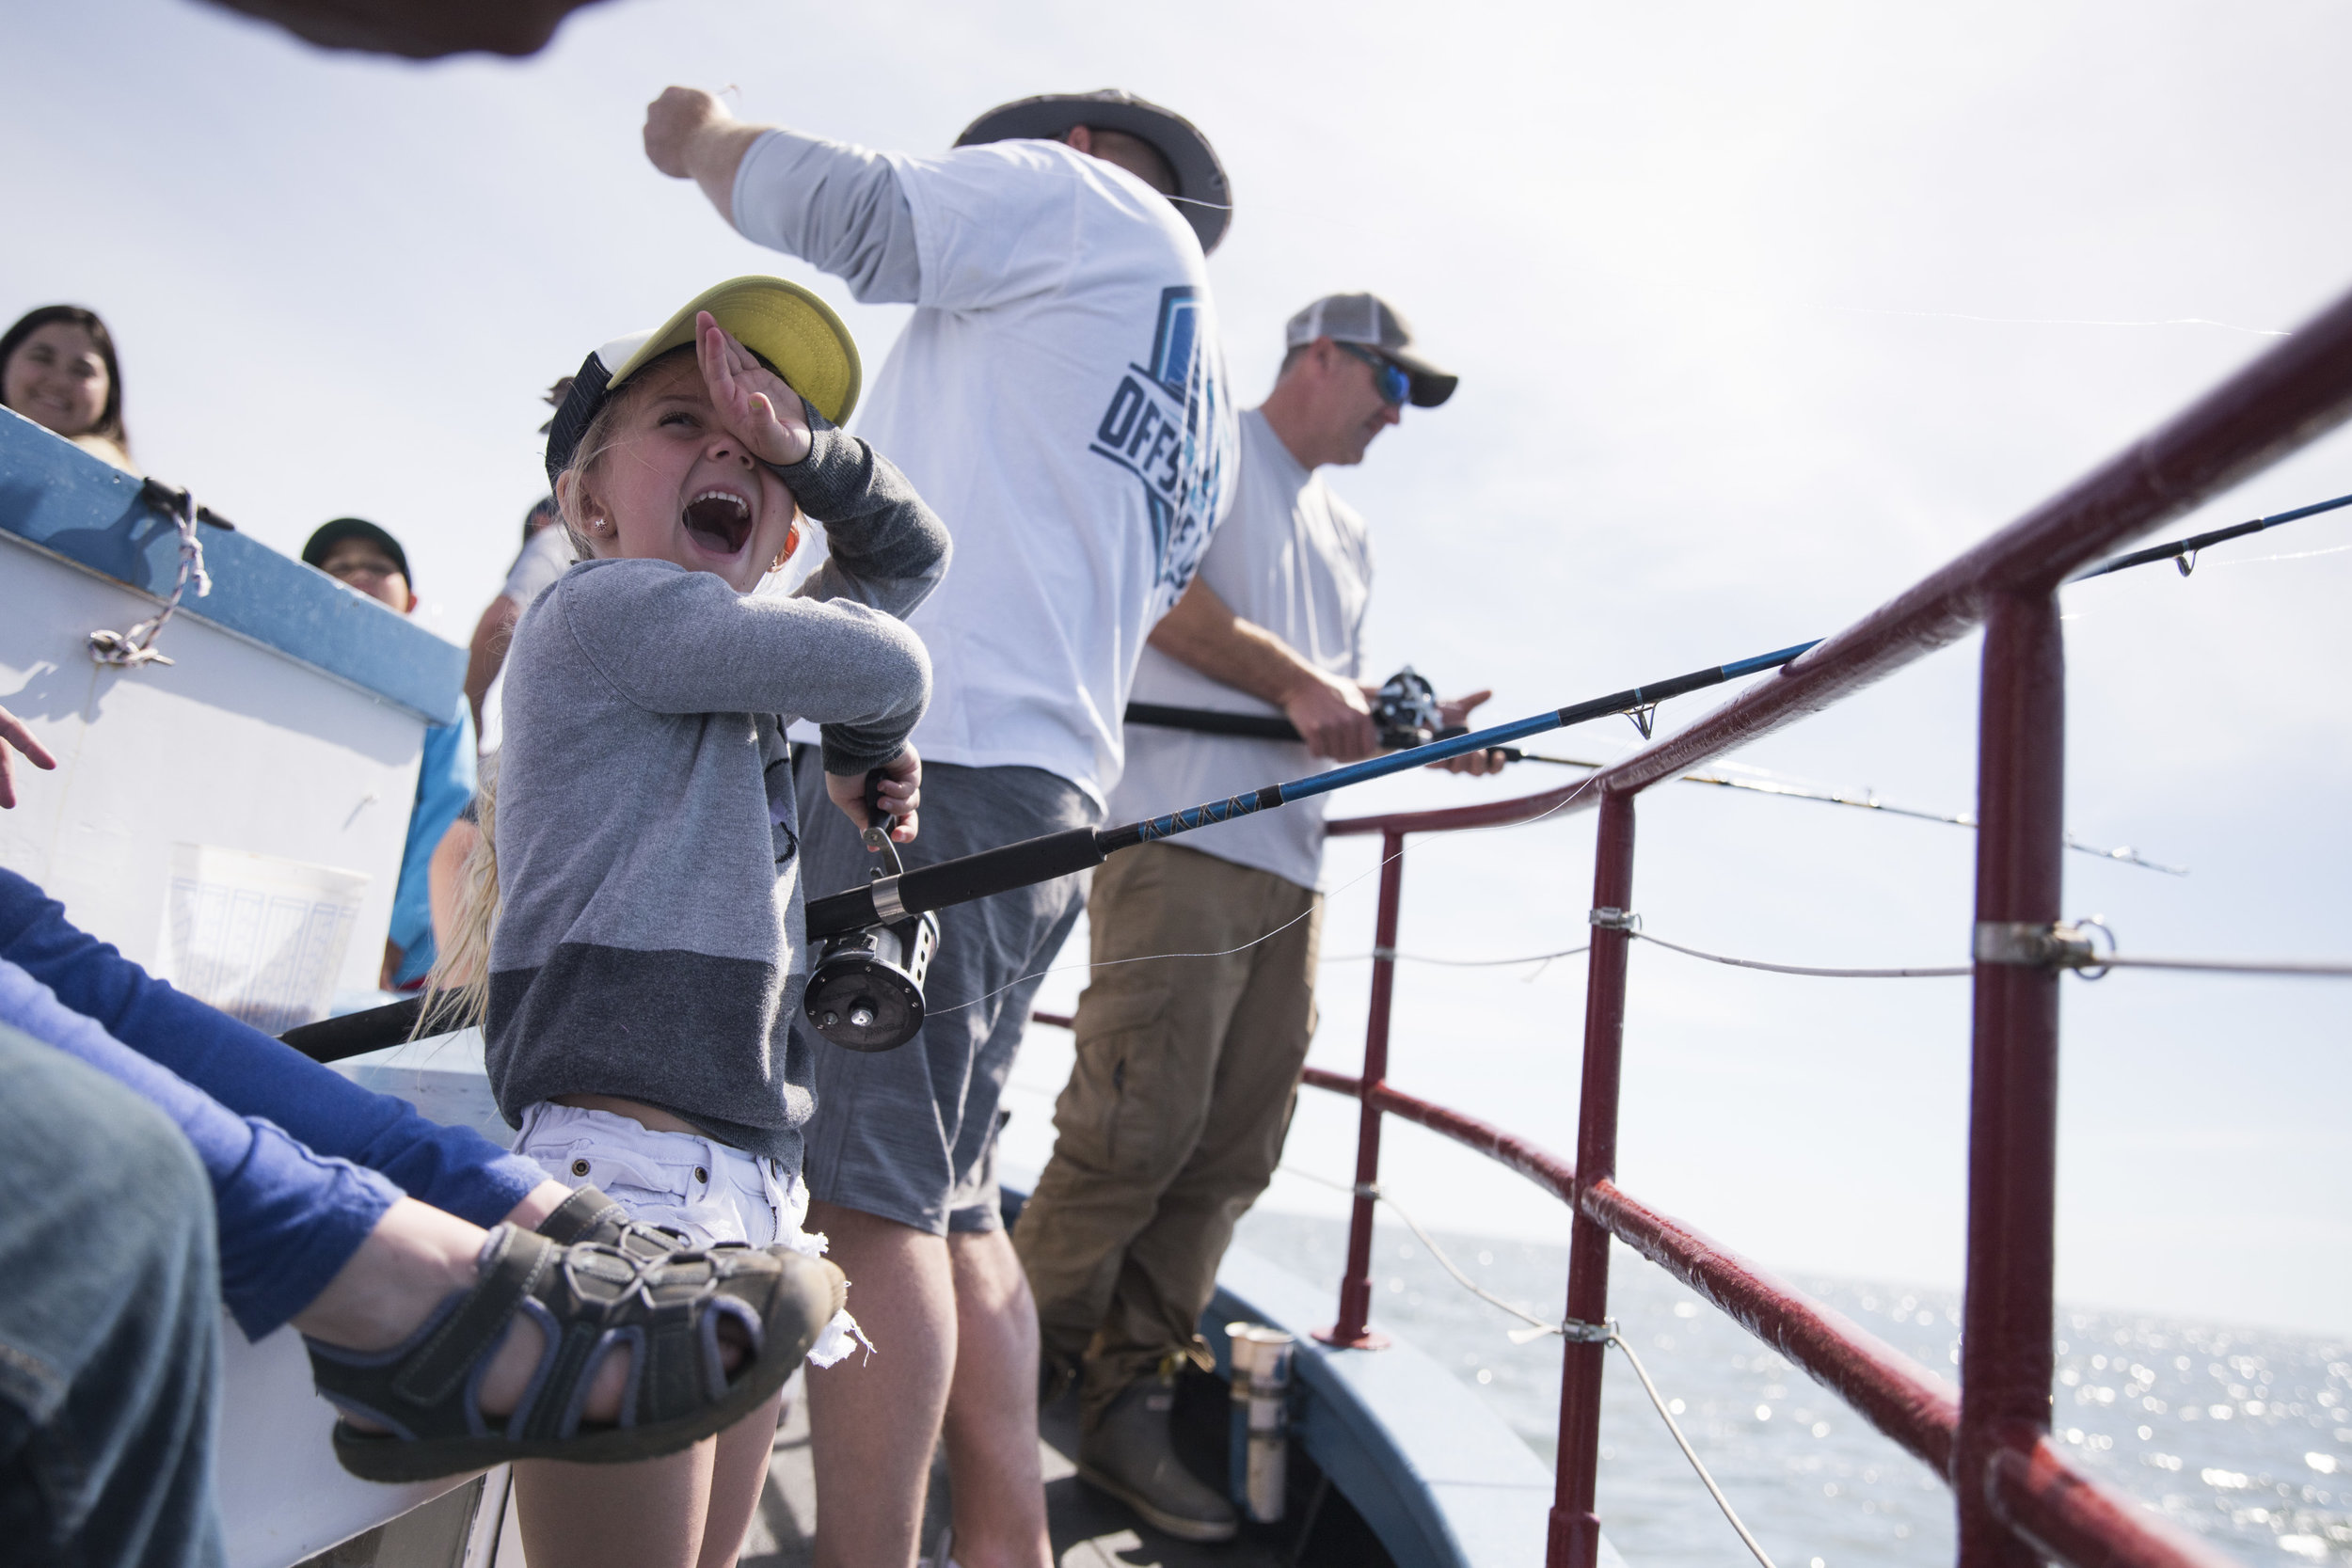 Willow Rosbeck, 5, turns with excitement as her dad unhooks fish she caught aboard the Skipper. Students from the Rainbow Place preschool in Edgartown, MA were treated to a free fishing trip to celebrate their graduation, curtesy of Skipper captain John Potter.